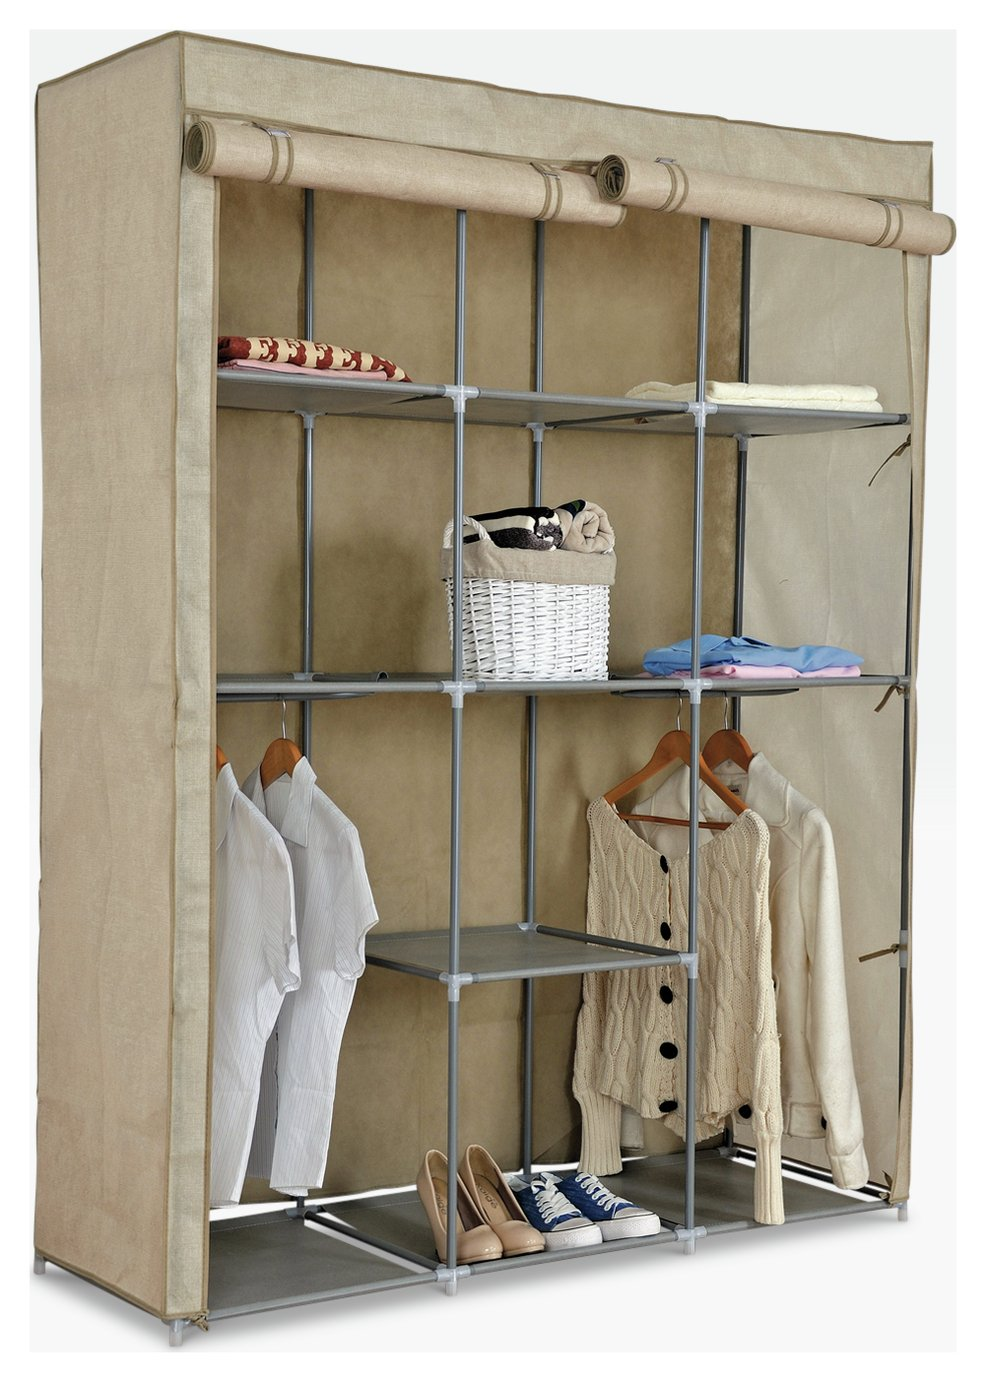 Argos Home Dbl Modular Metal Framed Fabric Wardrobe - Jute